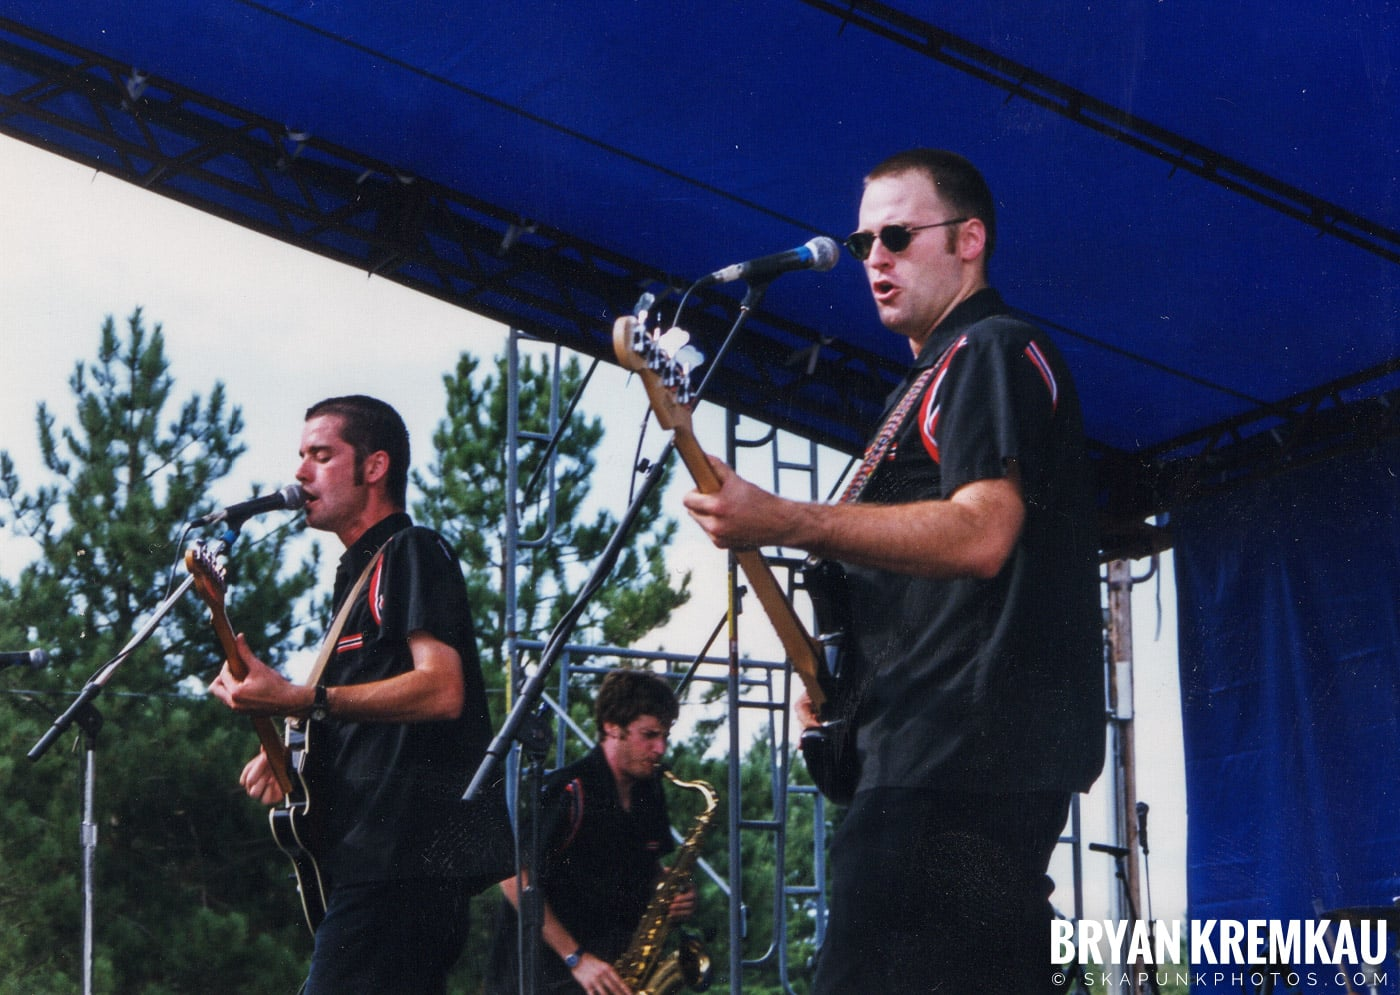 The Planet Smashers @ New England Ska Fest 98, Westford, MA - 8.22.98 (4)